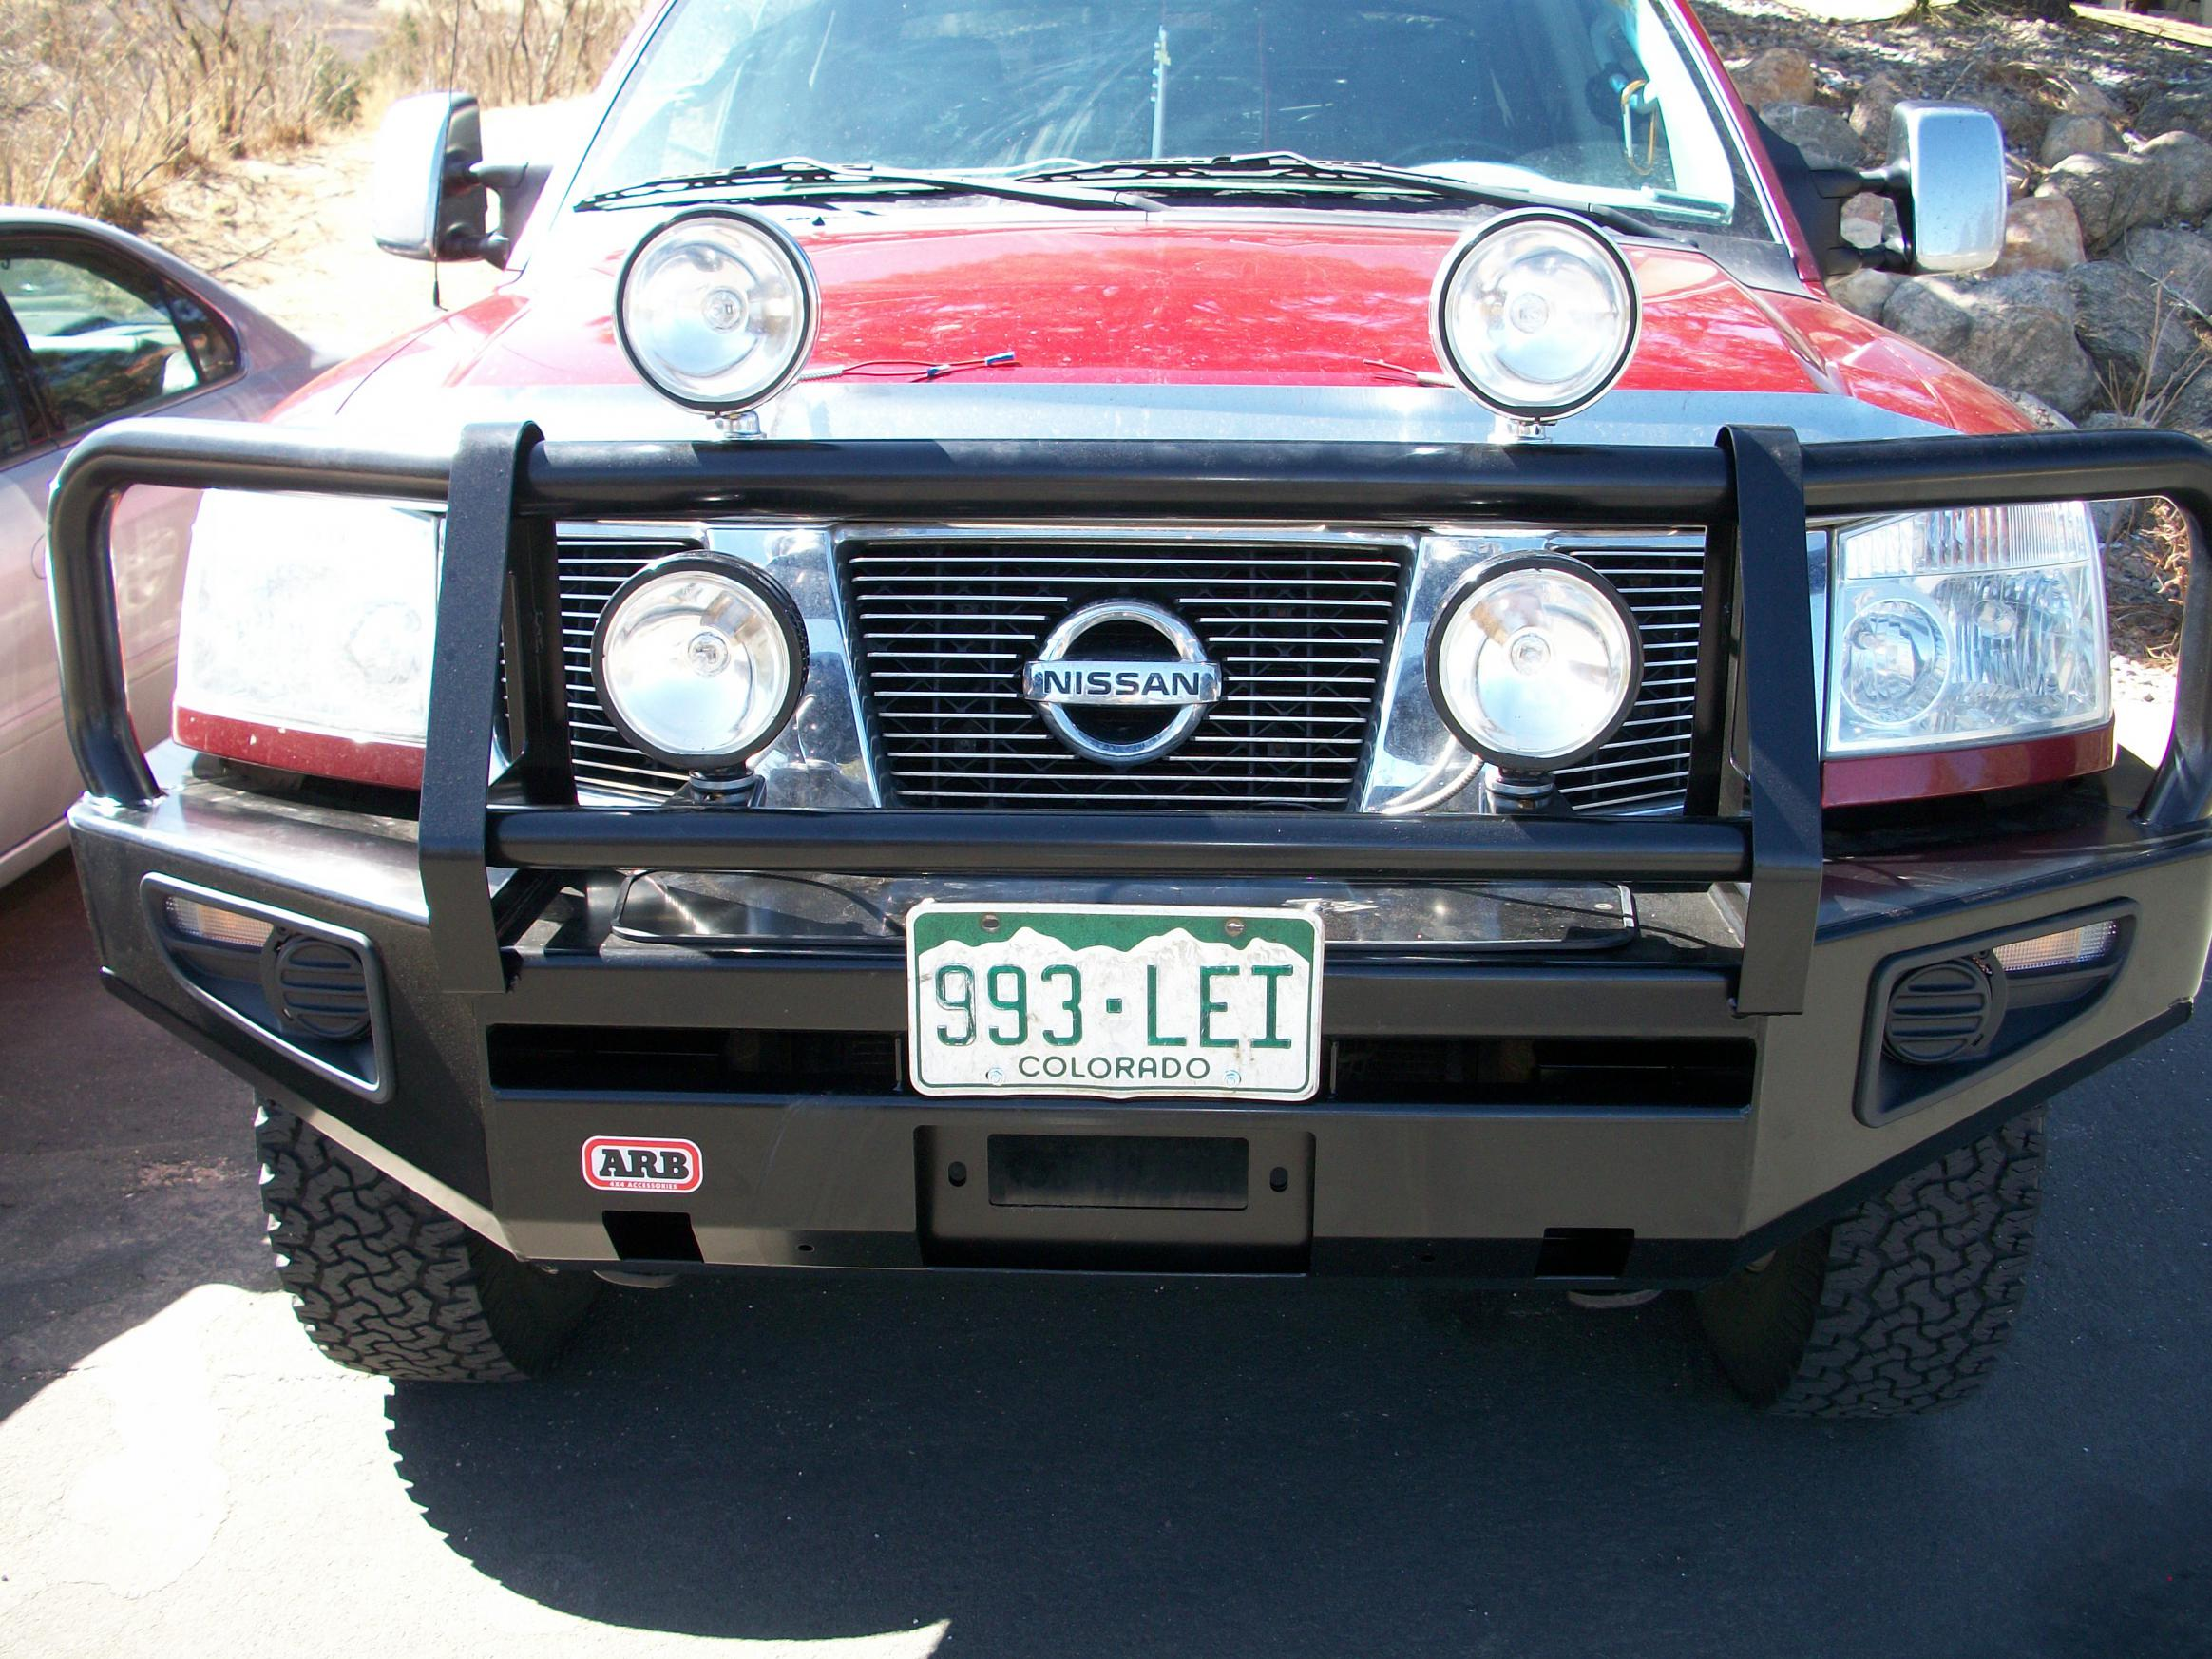 Arb bumper and a nifty roof rack